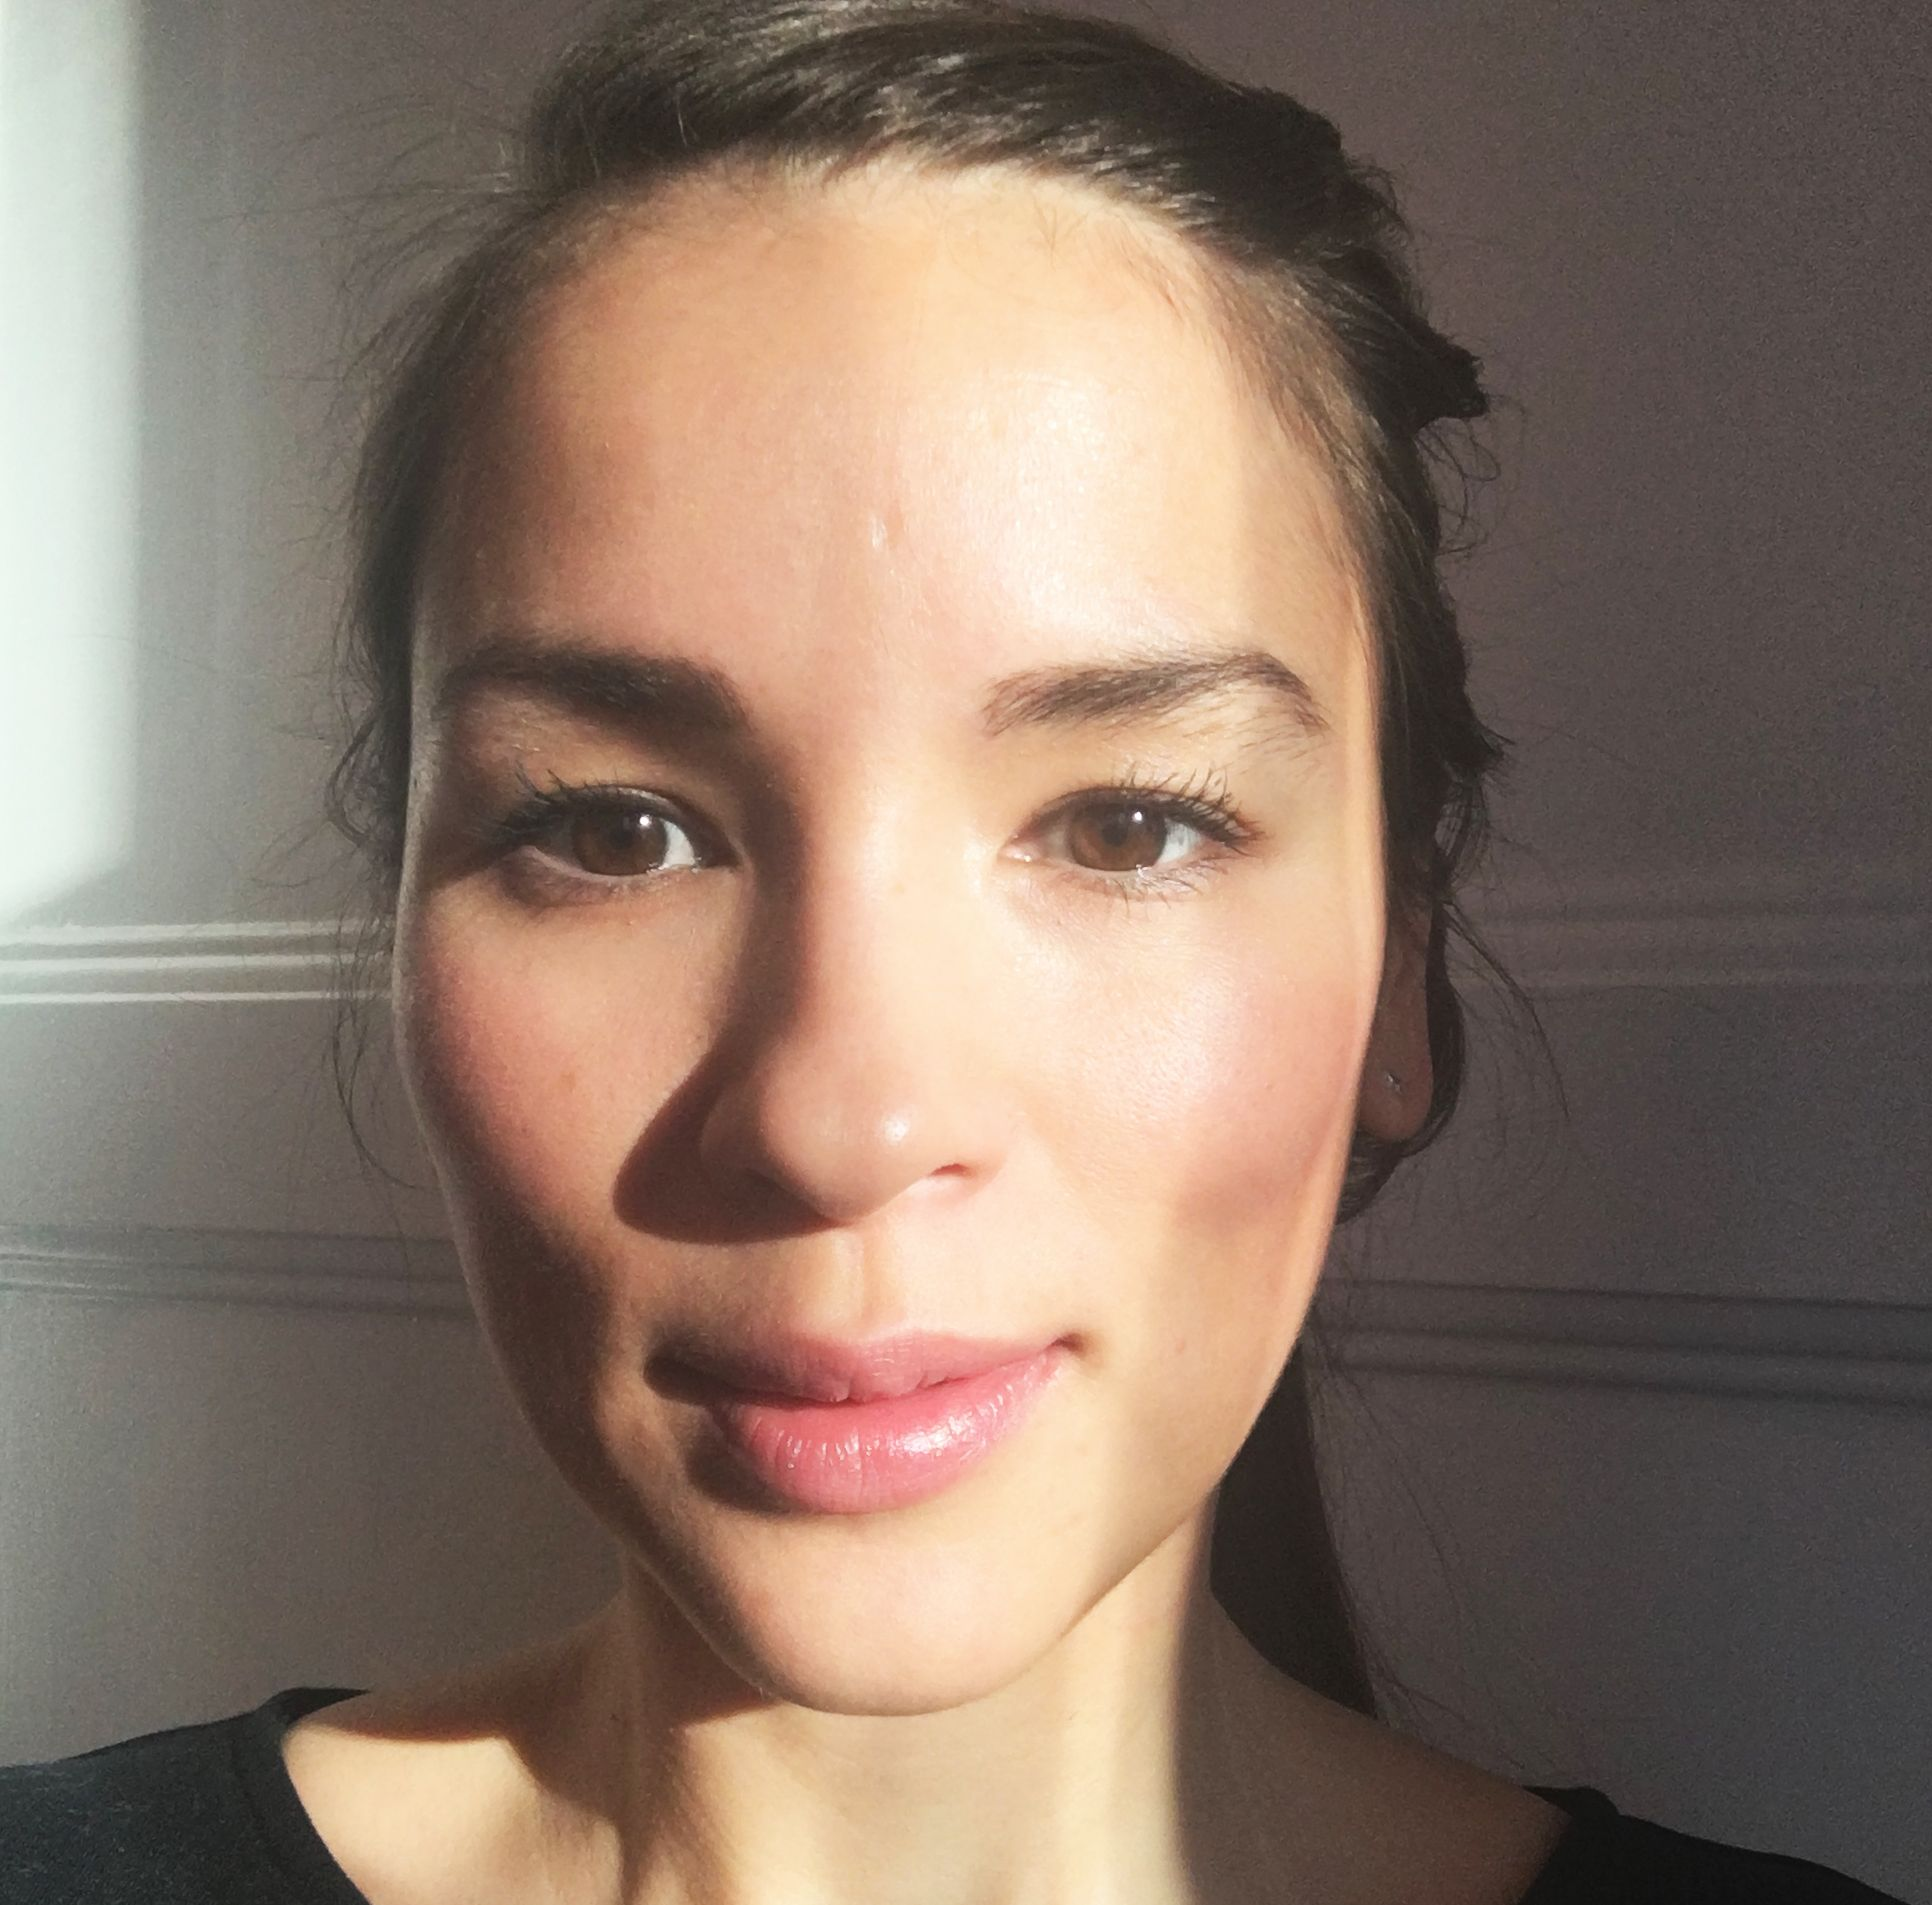 Rachel Khoo's fiveminute fresh face makeup tutorial